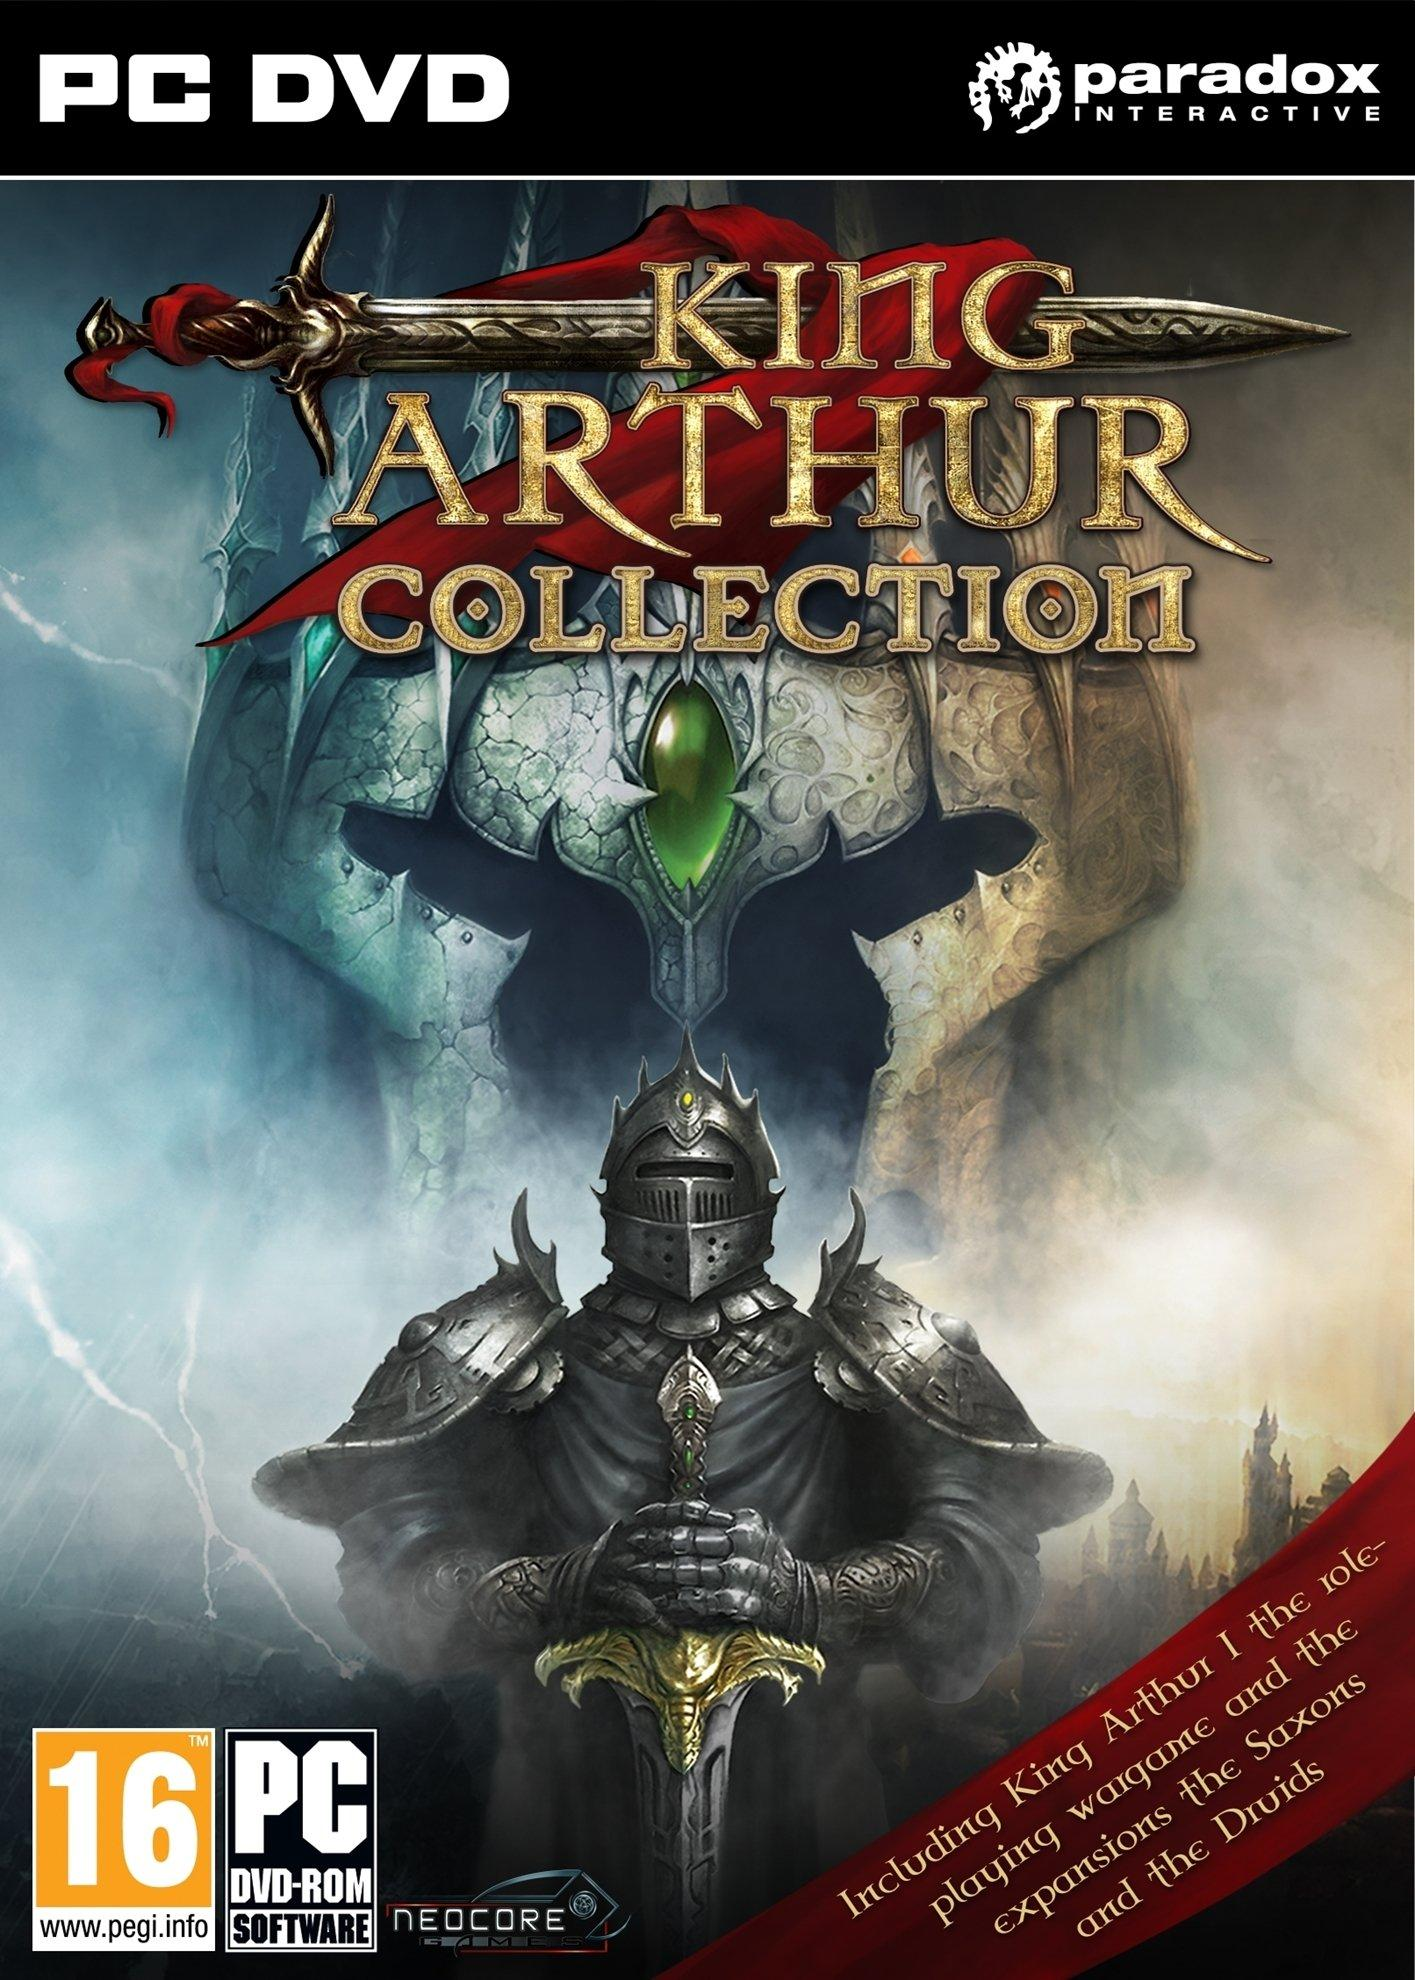 King Arthur Collection | ROW (9f6db56e-23db-499c-bdd9-6a55ea7bf5a8)